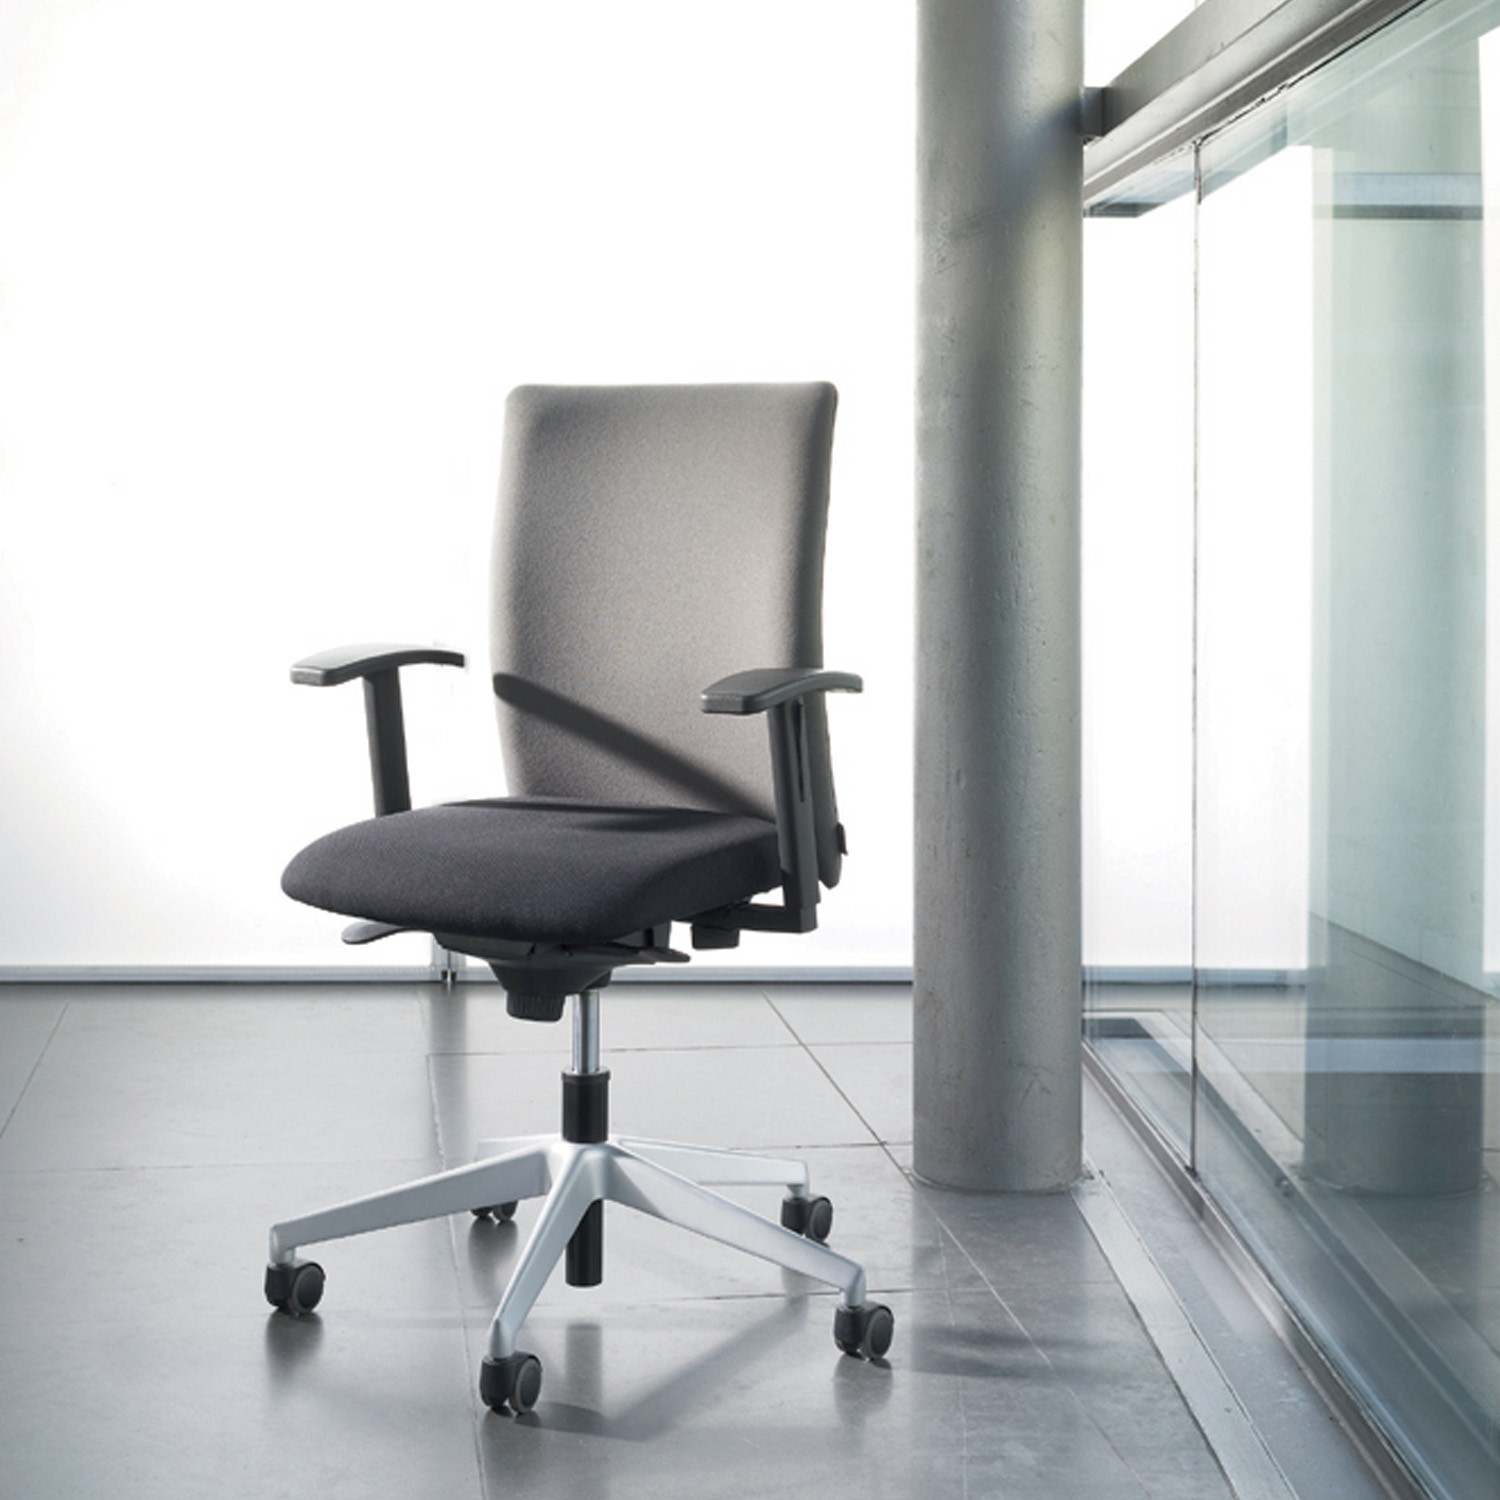 Paro Business Chair by Wiesner Hager